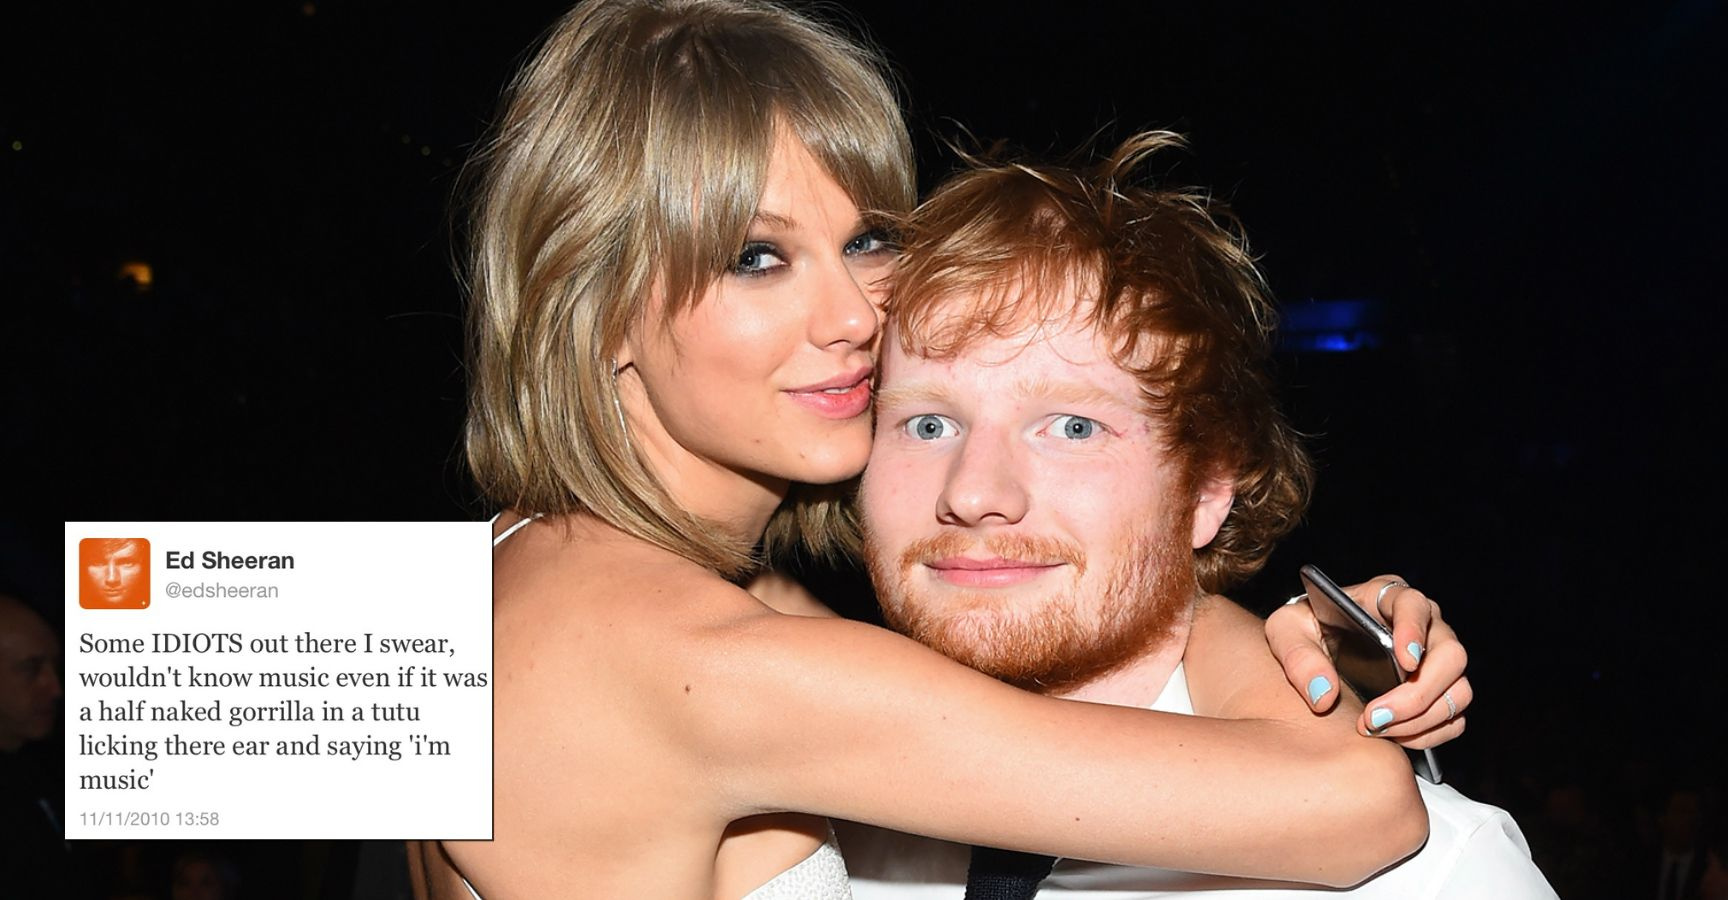 how to get in contact with ed sheeran